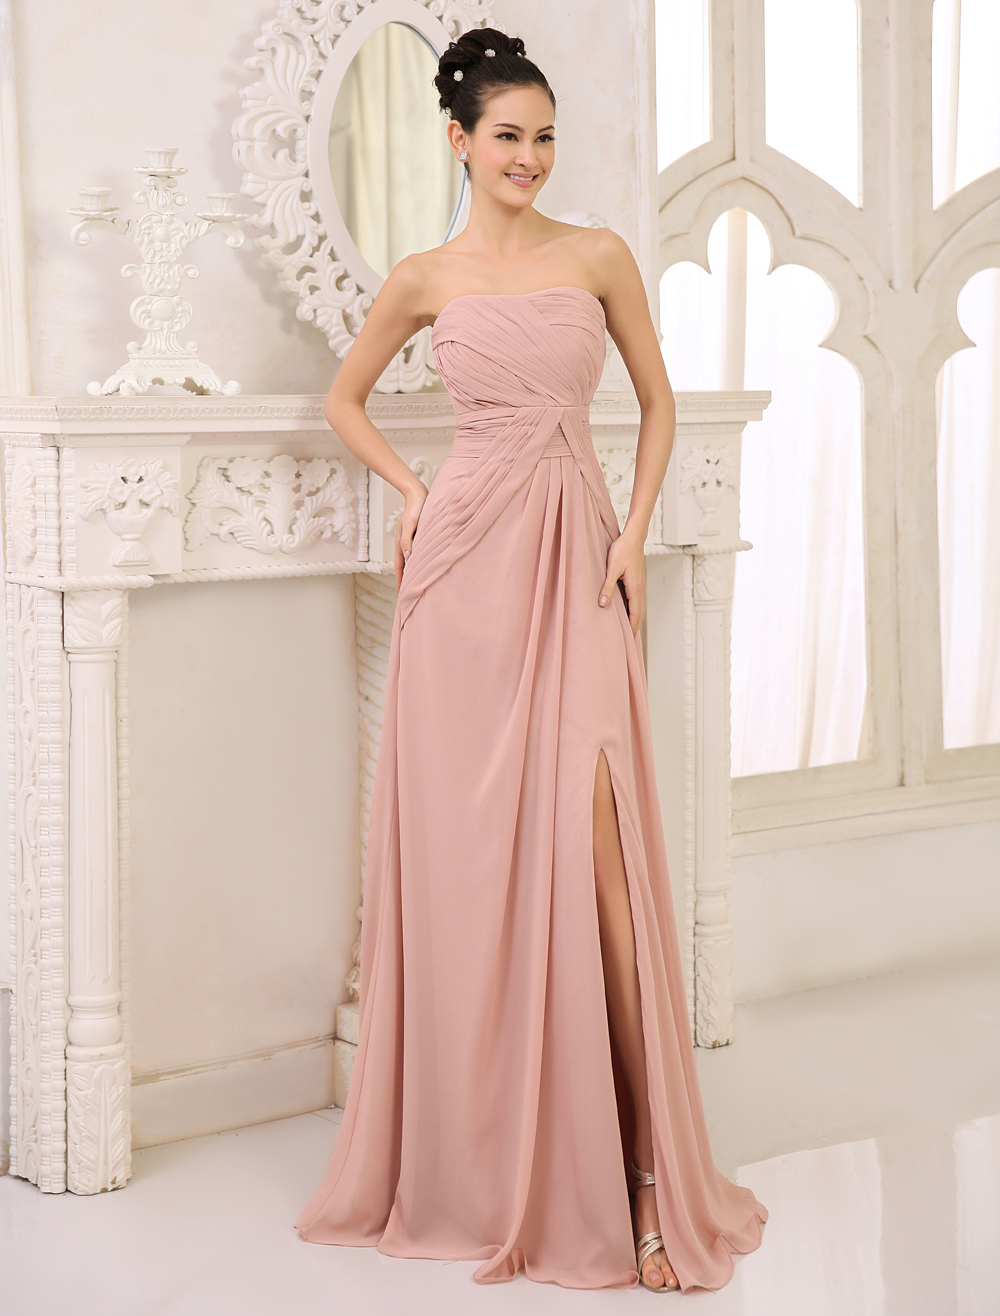 Chiffon Bridesmaid Dress Blush Pink Ruched Prom Dress Strapless Sleeveless Split Floor Length Party Dress